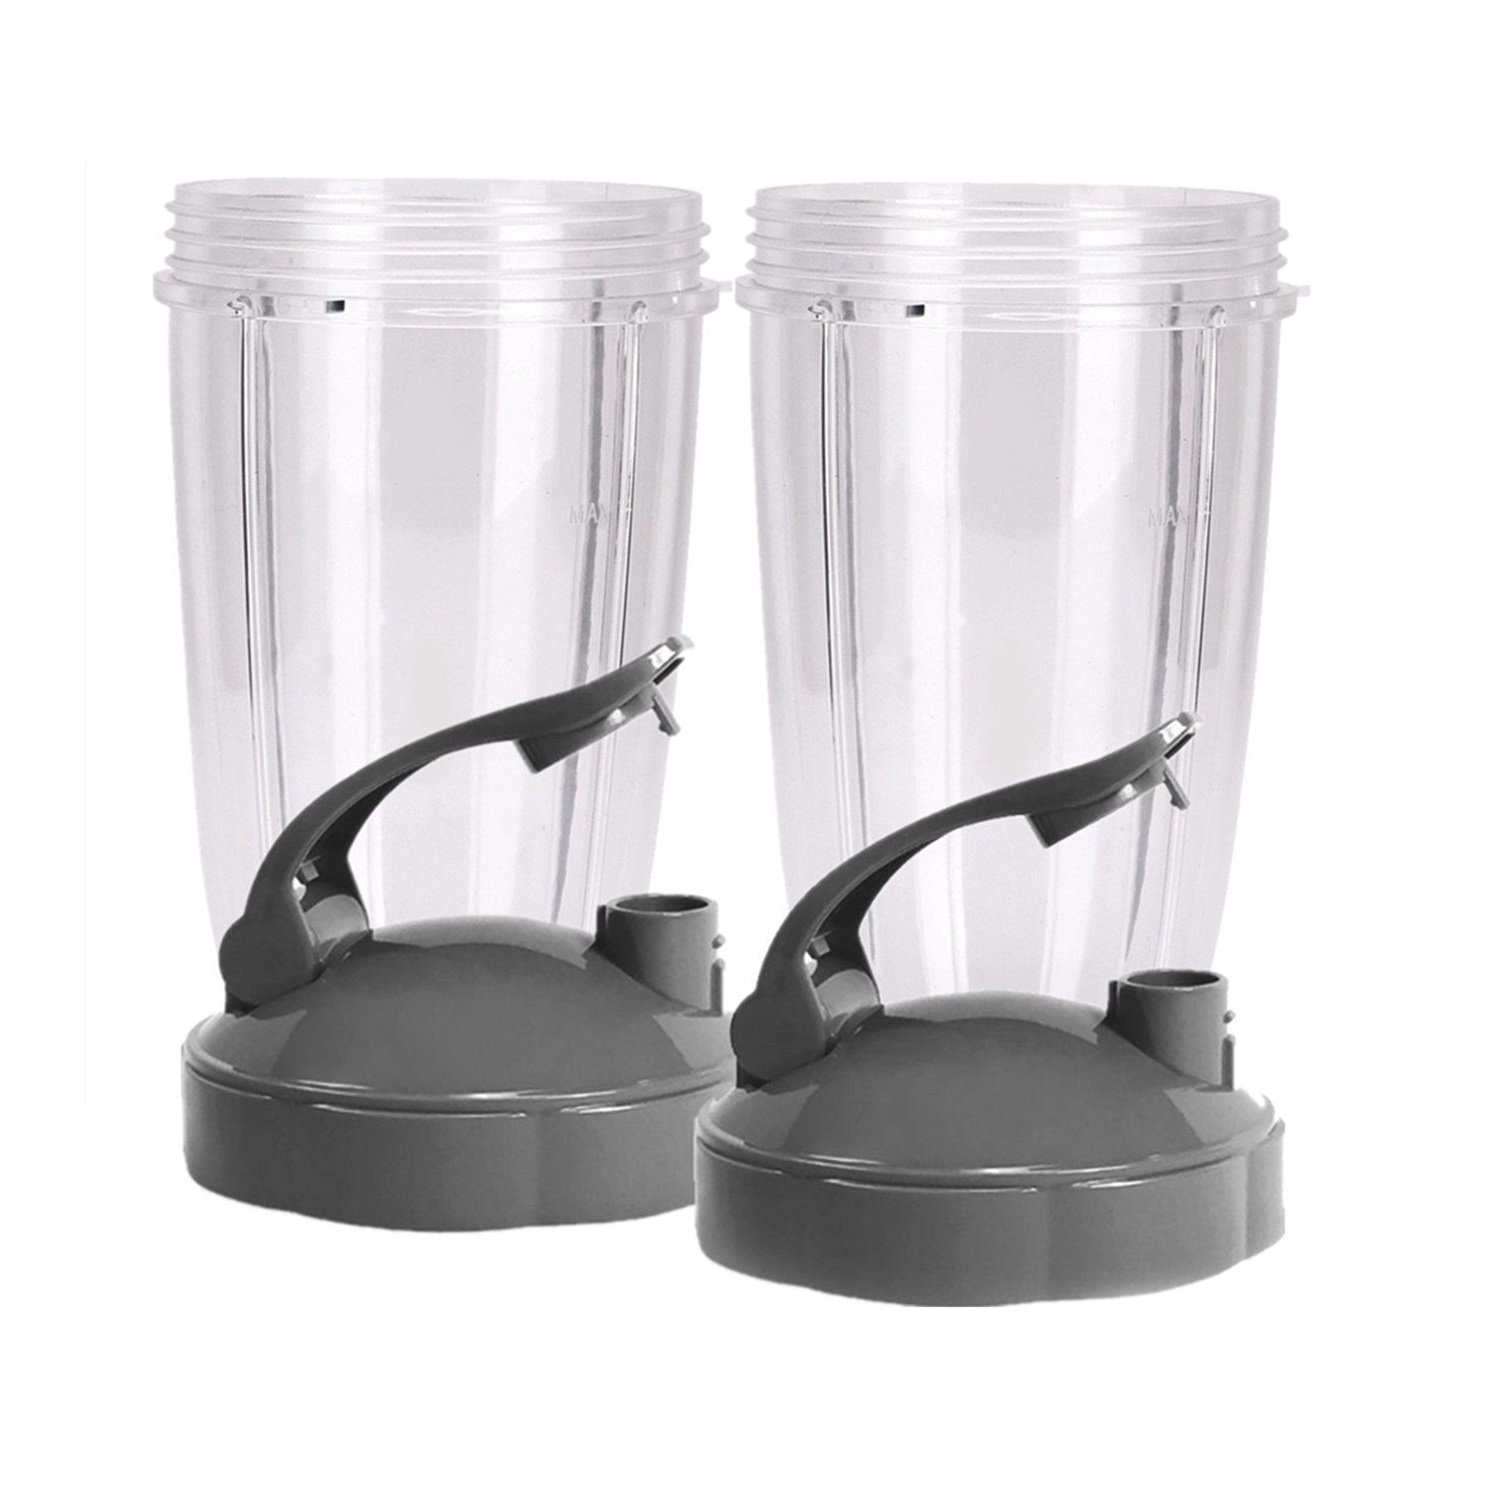 Blendin Flip Top To Go Lid with 24oz Tall Cup,Fits Nutribullet 600W 900W Blenders (2 Pack)